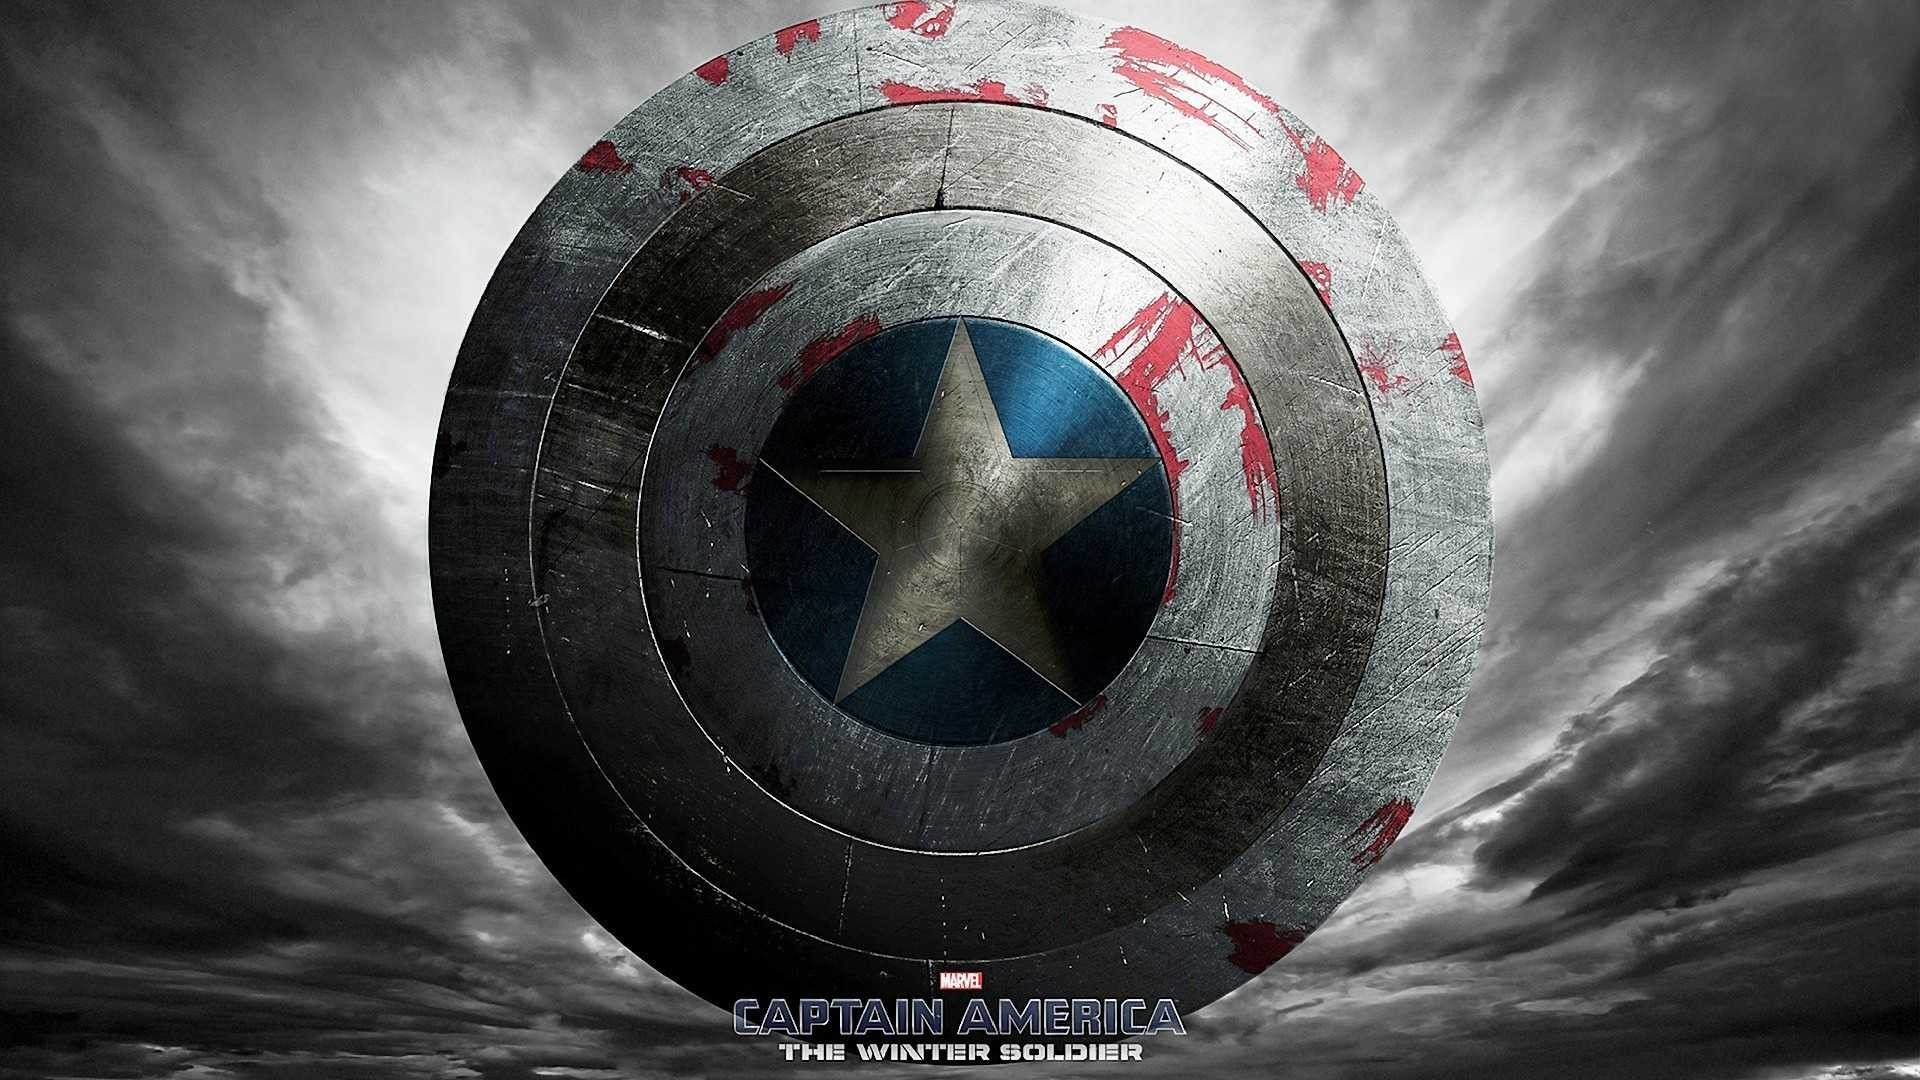 1920x1080  Photos For Captain America Shield Wallpaper High Quality  Smartphone